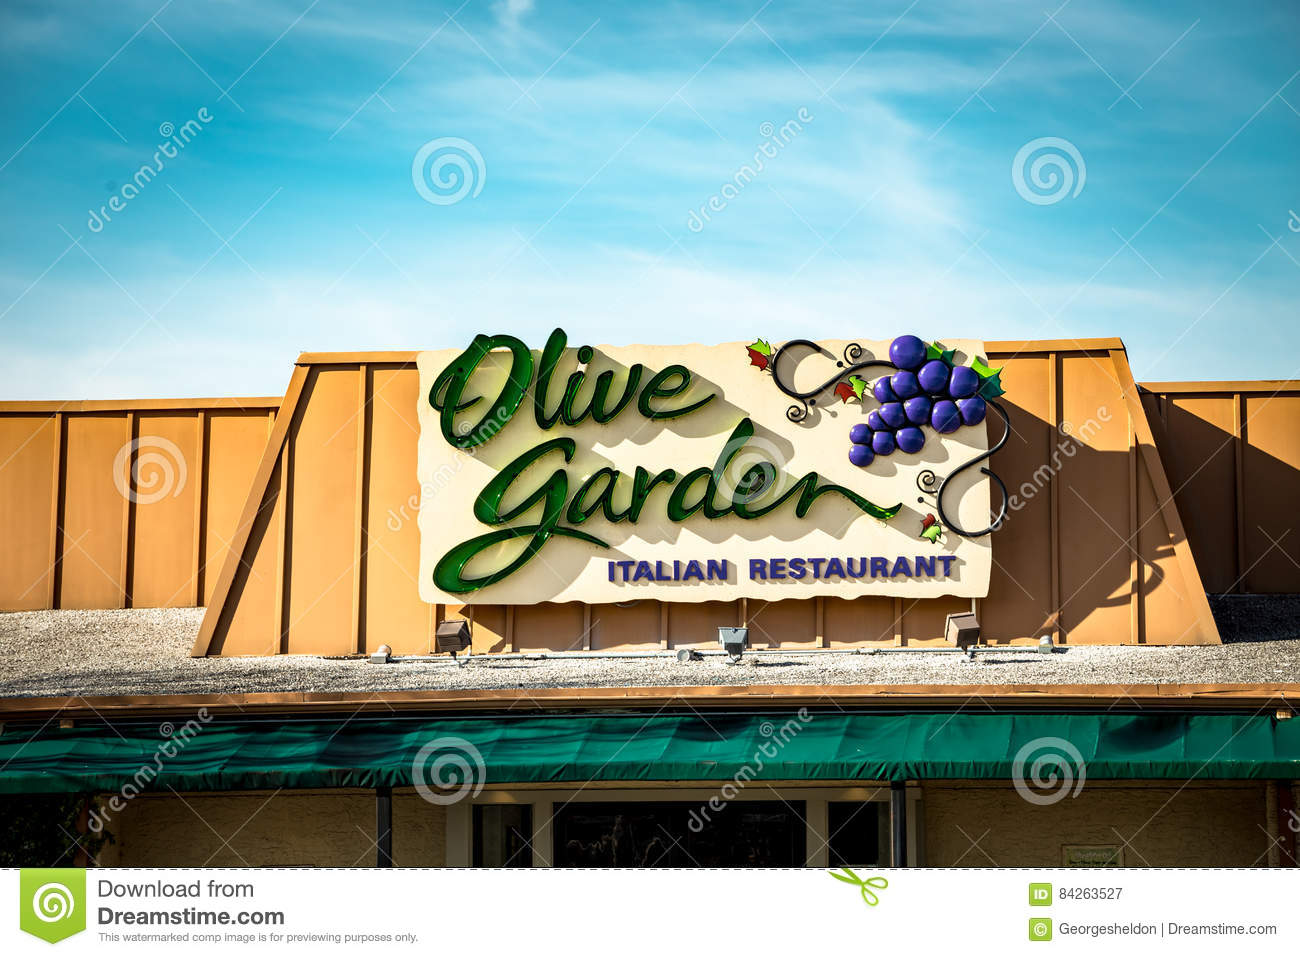 Scenic Exterior Sign Of Olive Garden Italian Kitchen Restaurant Editorial  With Goodlooking Exterior Sign Of Olive Garden Italian Kitchen Restaurant Editorial  Photography With Extraordinary Sherway Gardens Cinema Also How To Keep Foxes Out Of Your Garden In Addition Hounslow To Covent Garden And China Garden Hackbridge As Well As Montagu On The Gardens Additionally Hillcrest Garden Centre From Dreamstimecom With   Goodlooking Exterior Sign Of Olive Garden Italian Kitchen Restaurant Editorial  With Extraordinary Exterior Sign Of Olive Garden Italian Kitchen Restaurant Editorial  Photography And Scenic Sherway Gardens Cinema Also How To Keep Foxes Out Of Your Garden In Addition Hounslow To Covent Garden From Dreamstimecom